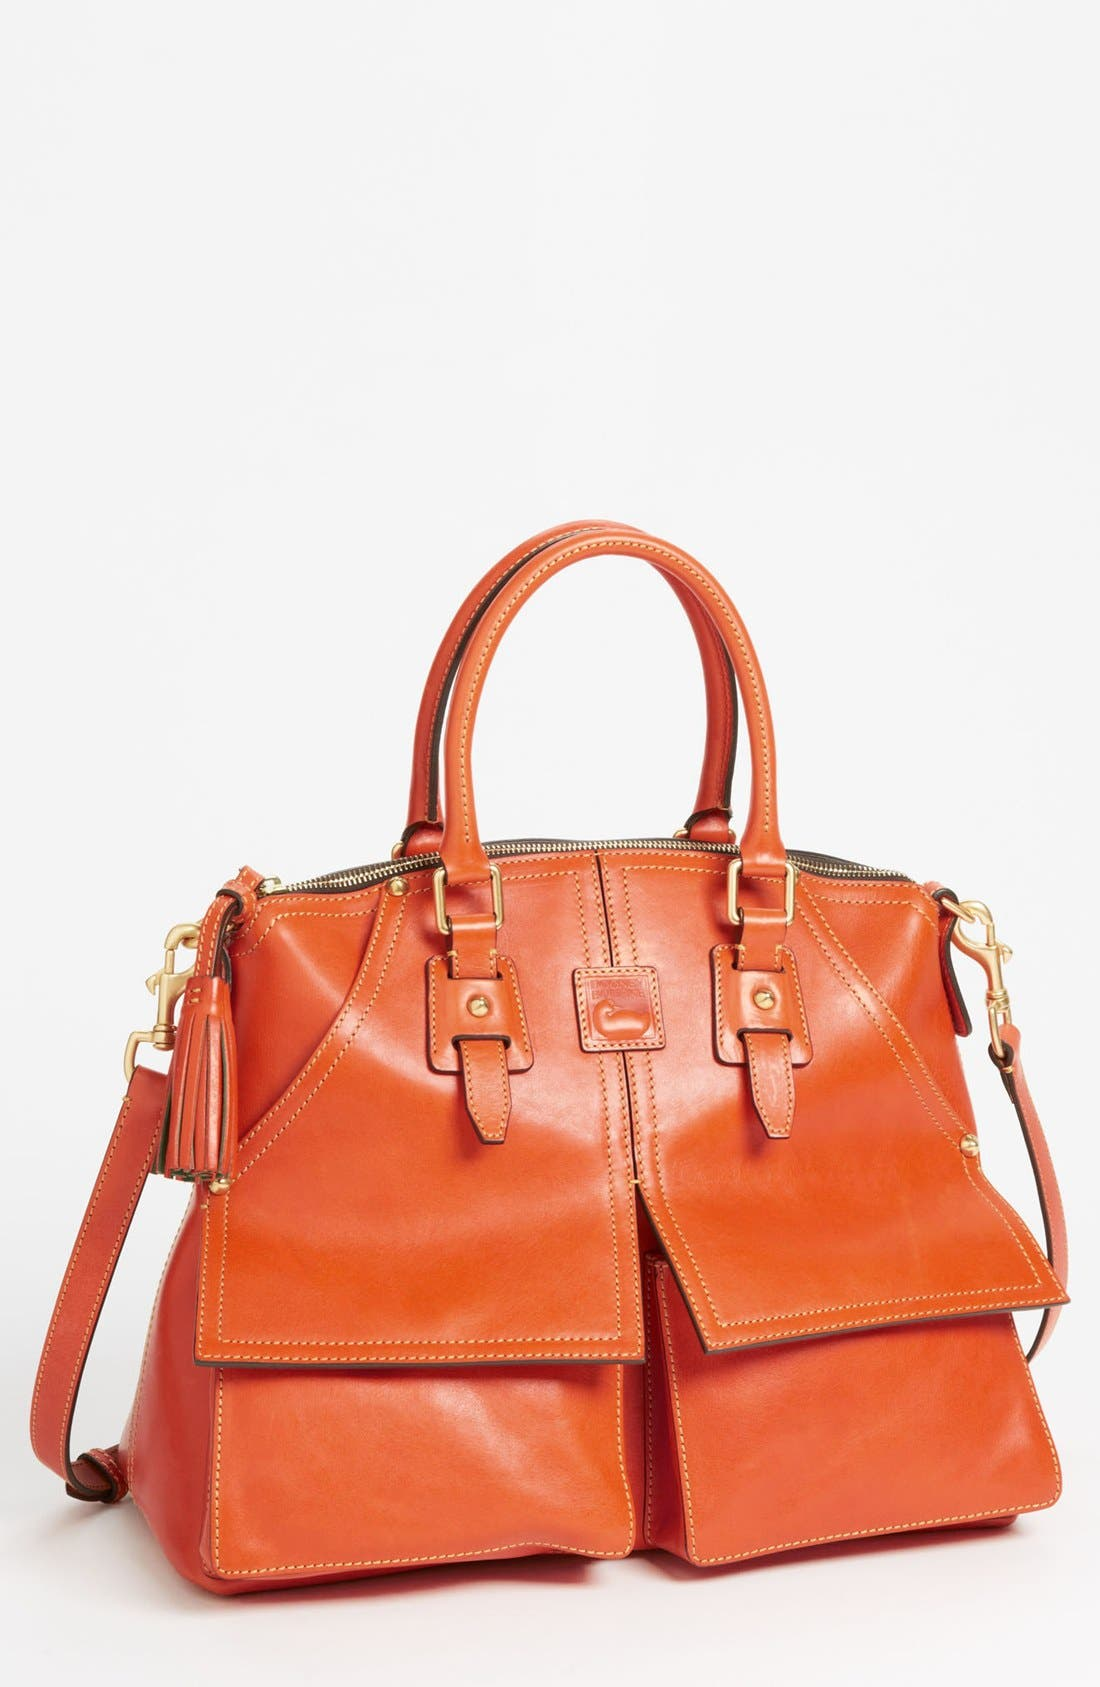 Alternate Image 1 Selected - Dooney & Bourke 'Clayton' Satchel